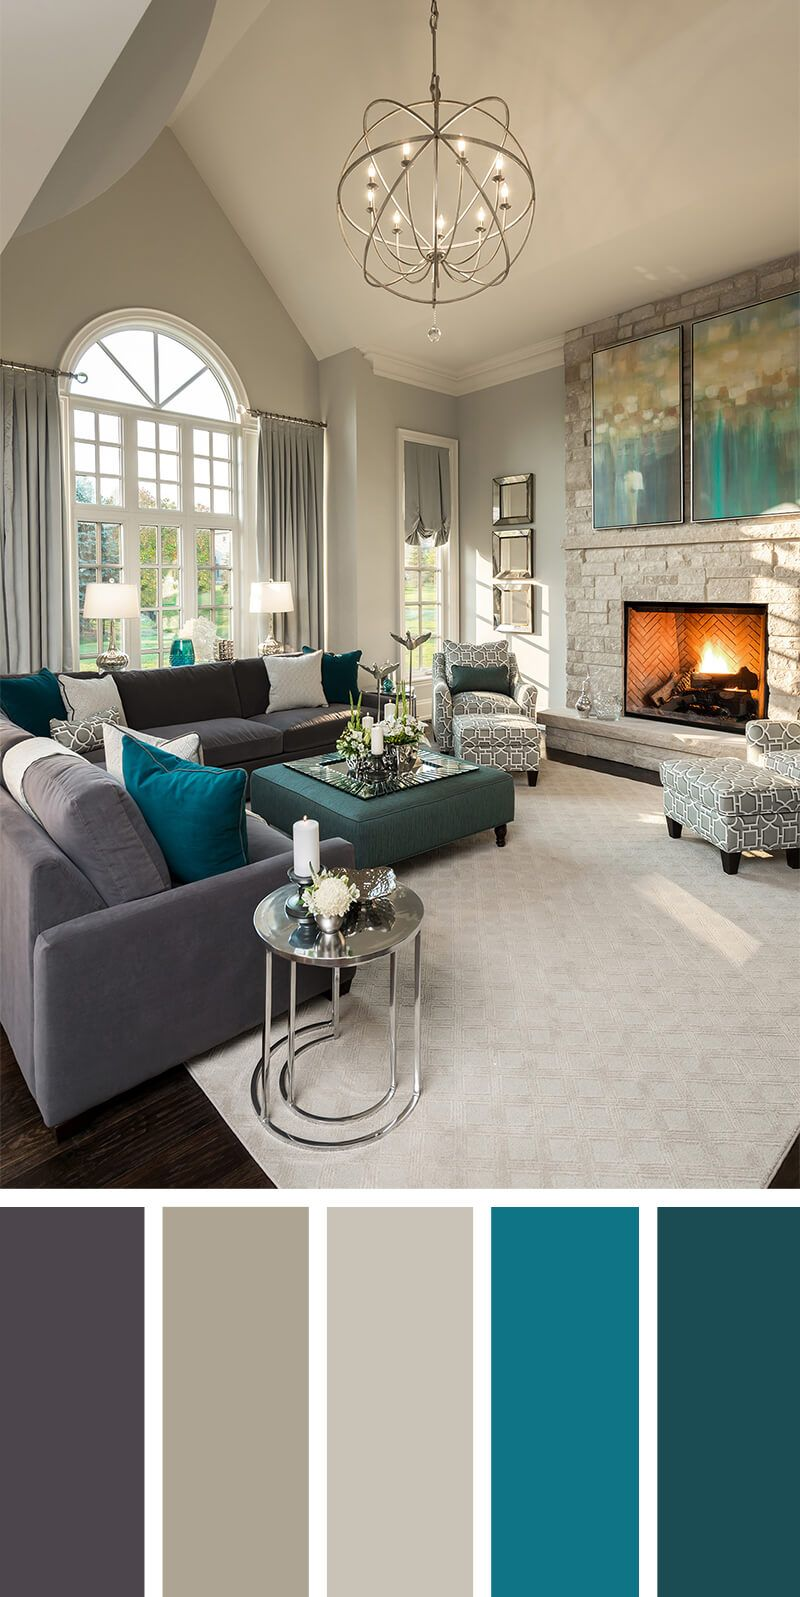 Best Color For Living Room Wild Country Fine Arts Home living room color schemes png